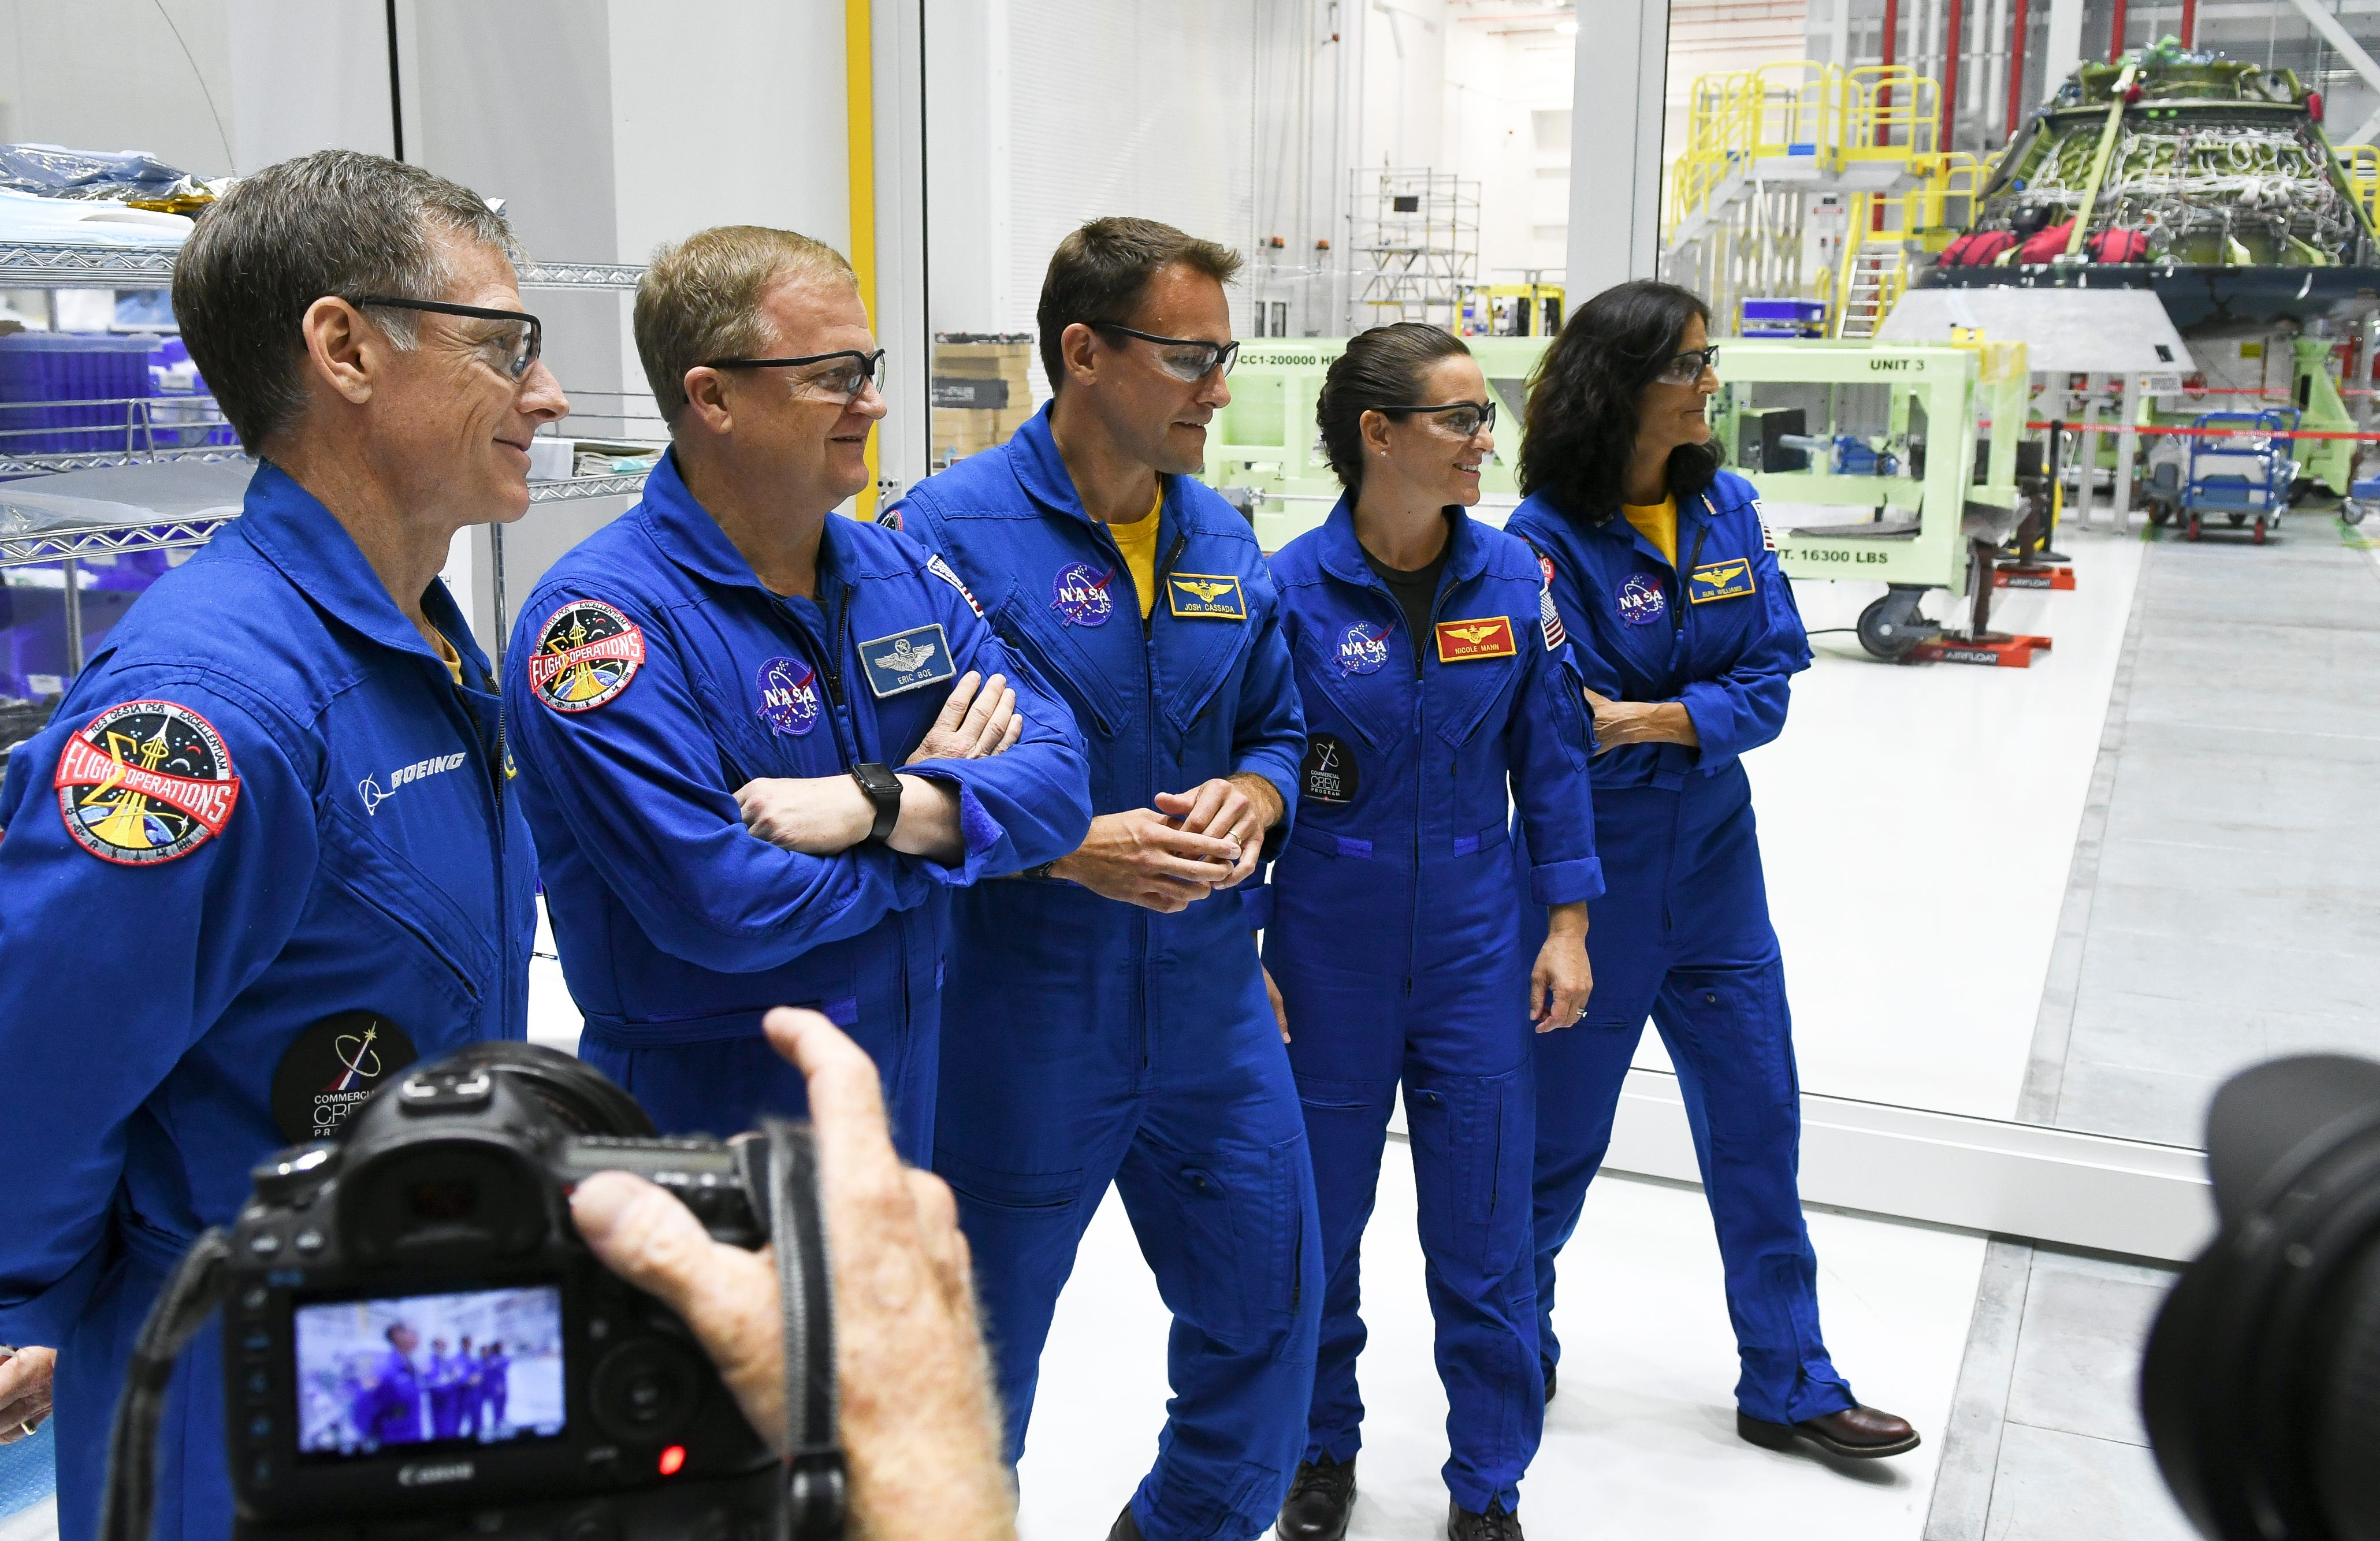 70d5f80f-0cf6-48d8-9020-69ae3337669e-crb080918_starliner_3_ Boeing Starliner astronauts make first official visit to Kennedy Space Center